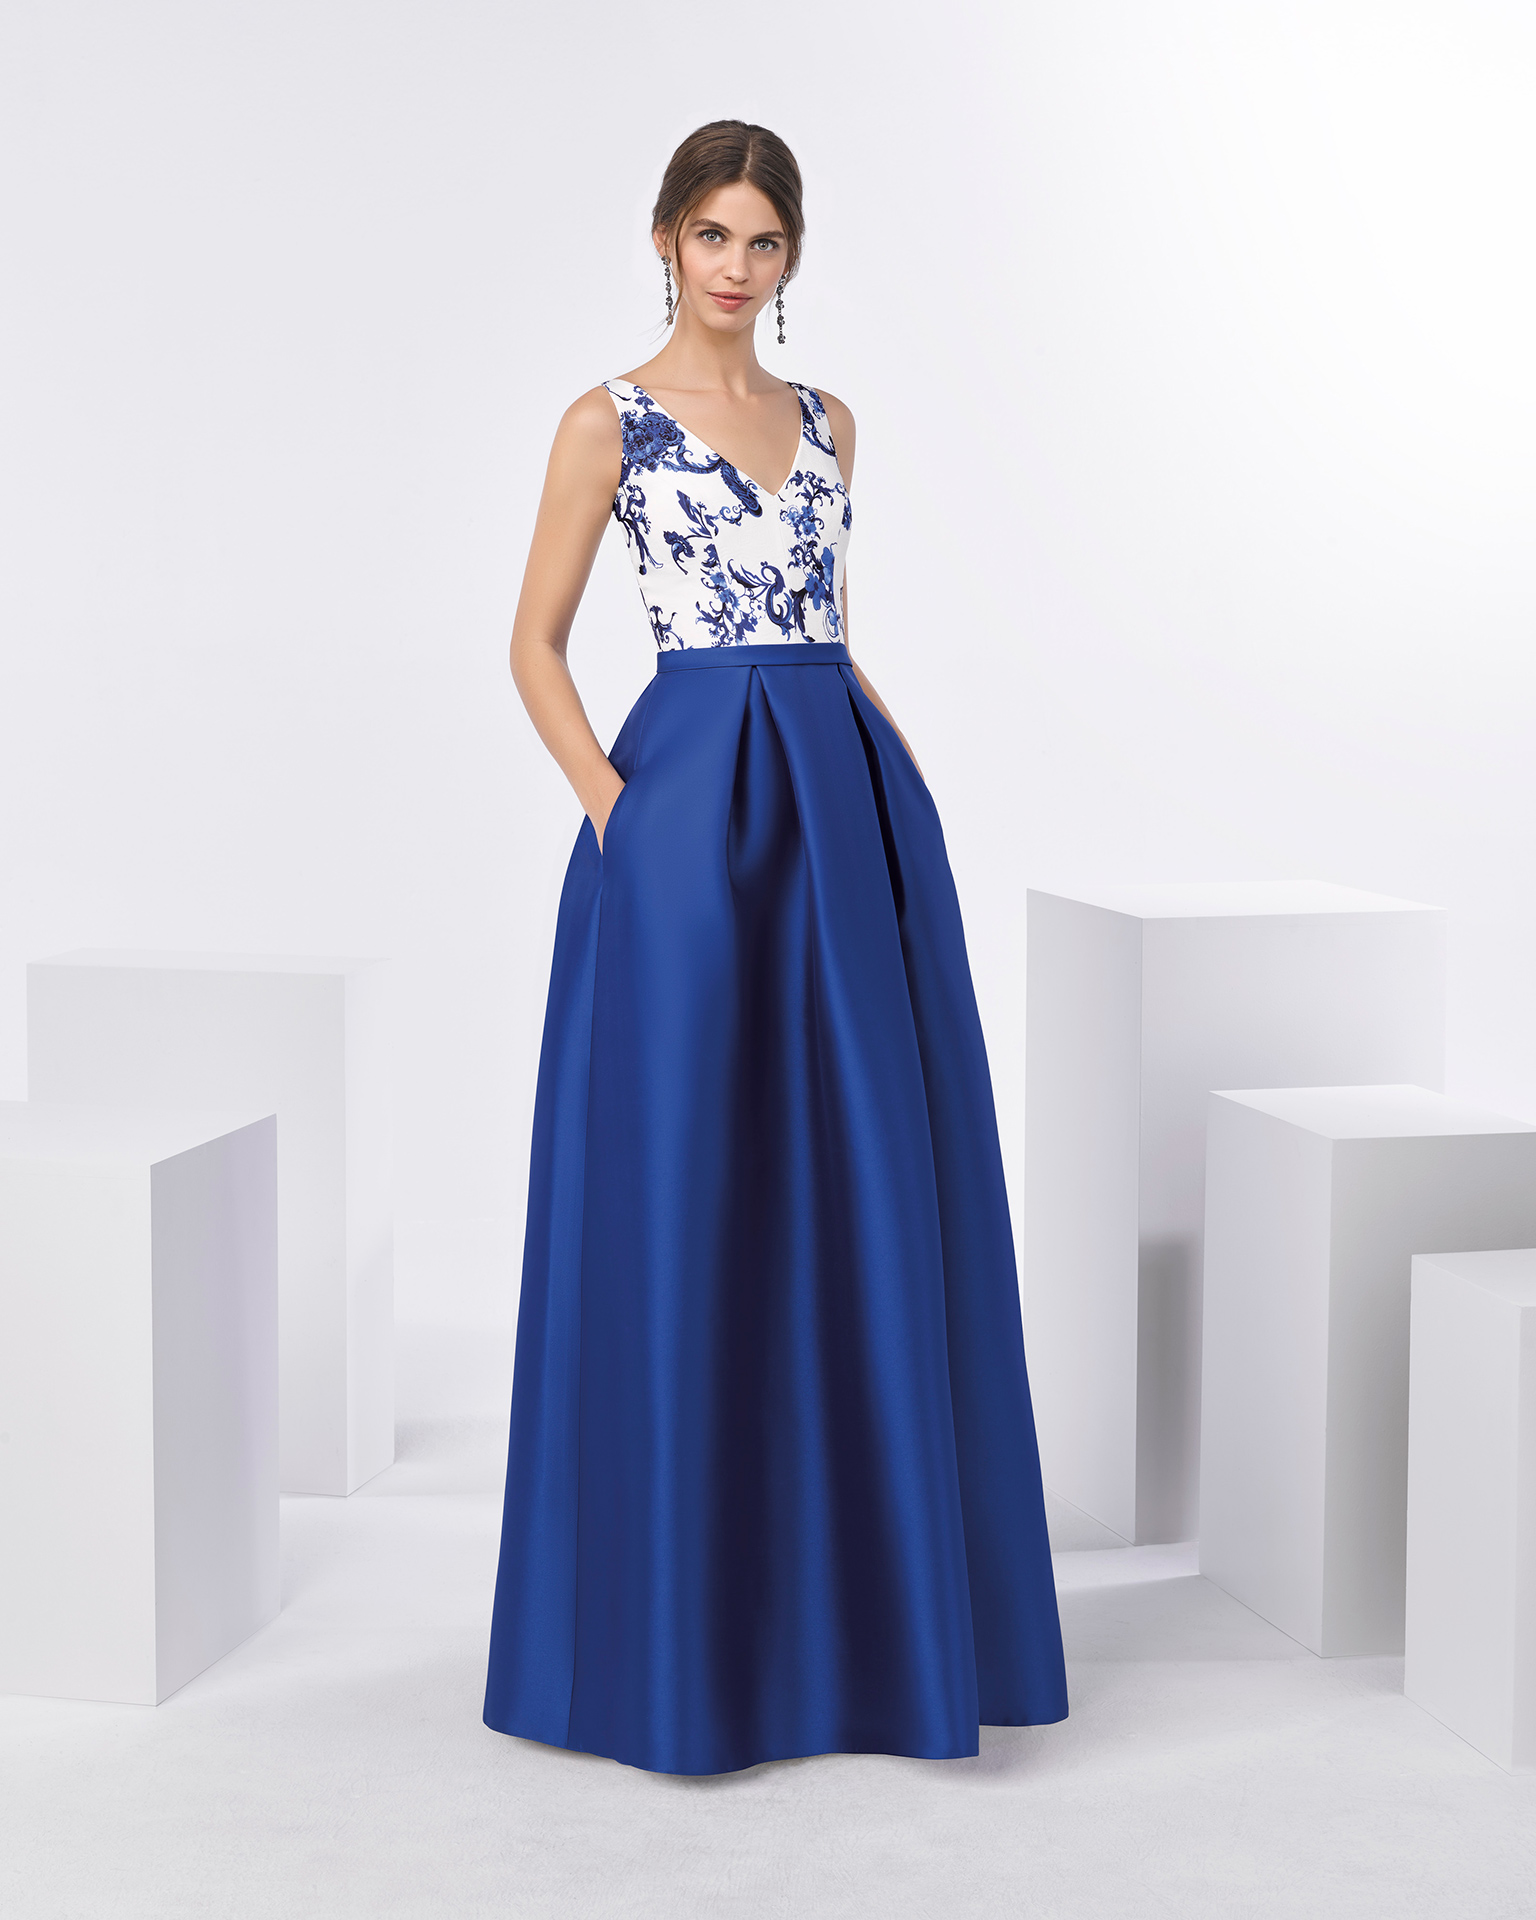 Vestidos para damas de honor azul petroleo